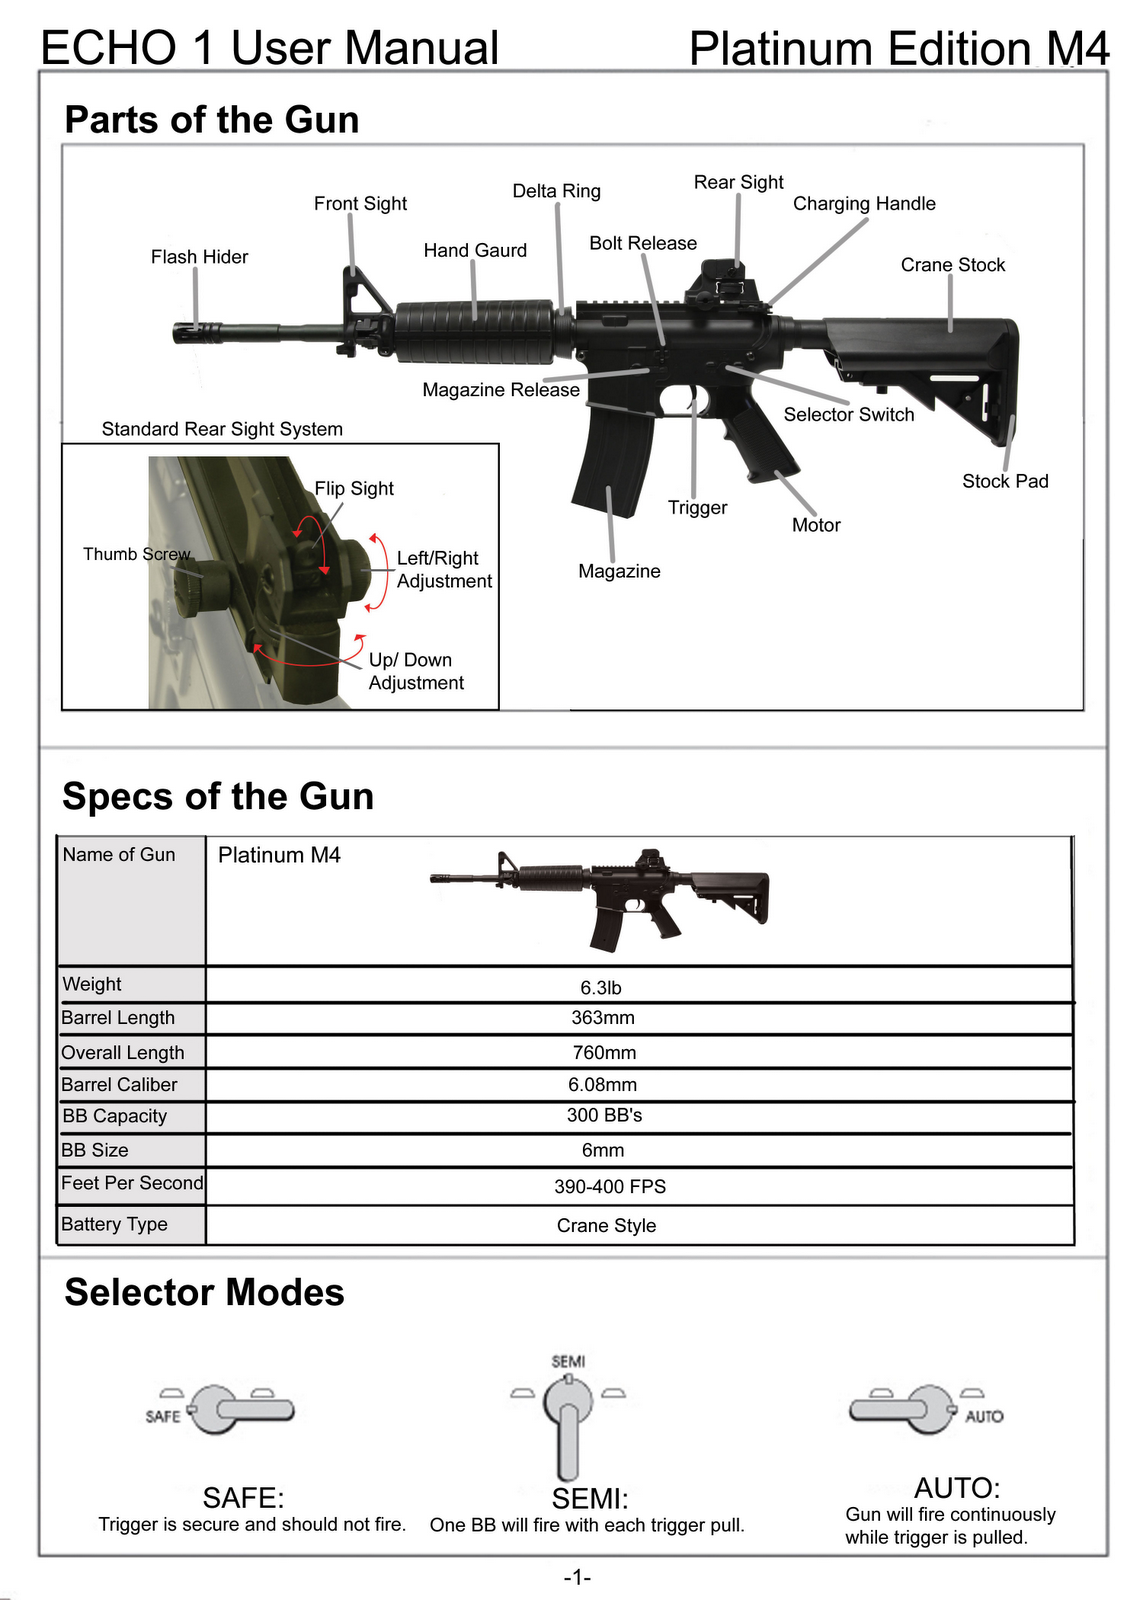 Pyramyd Airsoft Blog Review Echo1 Platinum M4 Aeg Part I Gun Diagrams 1911 Mil Spec Free Download Wiring Pictures Heres A Helpful Little Diagram Of The Various Parts And Controls Ive Mentioned Above Just In Case Wasnt Clear Enough Click On Pic For More